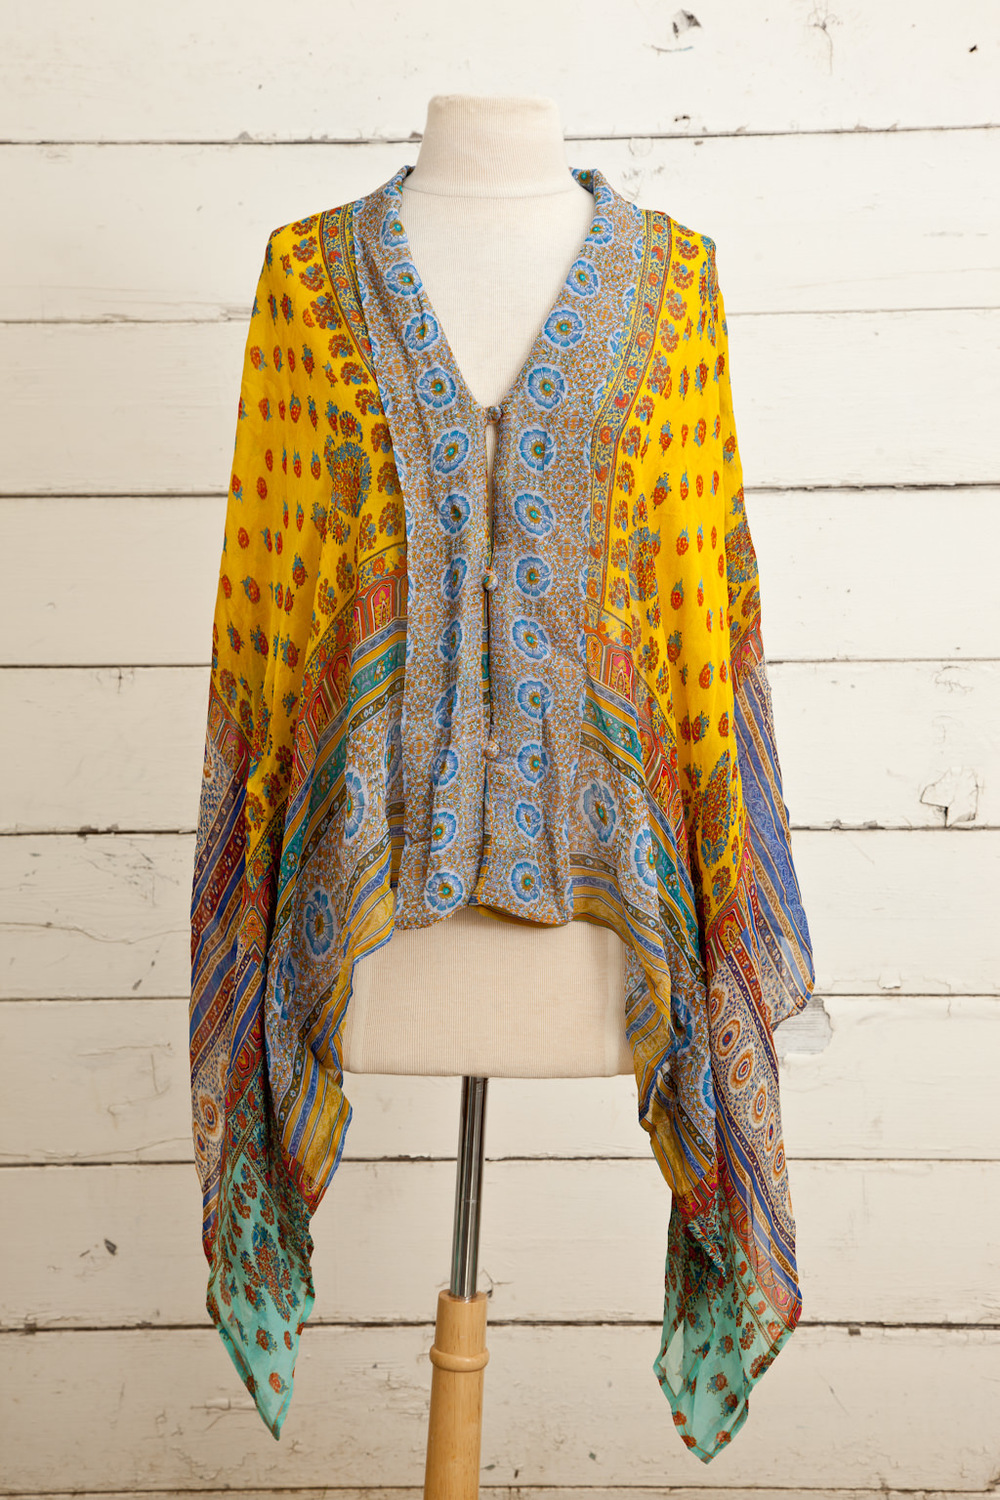 Style No.: #8364  Color: Lemon Sherbet Multi  Quality: Bamberg Georgette (Kimono)  Size: One Size